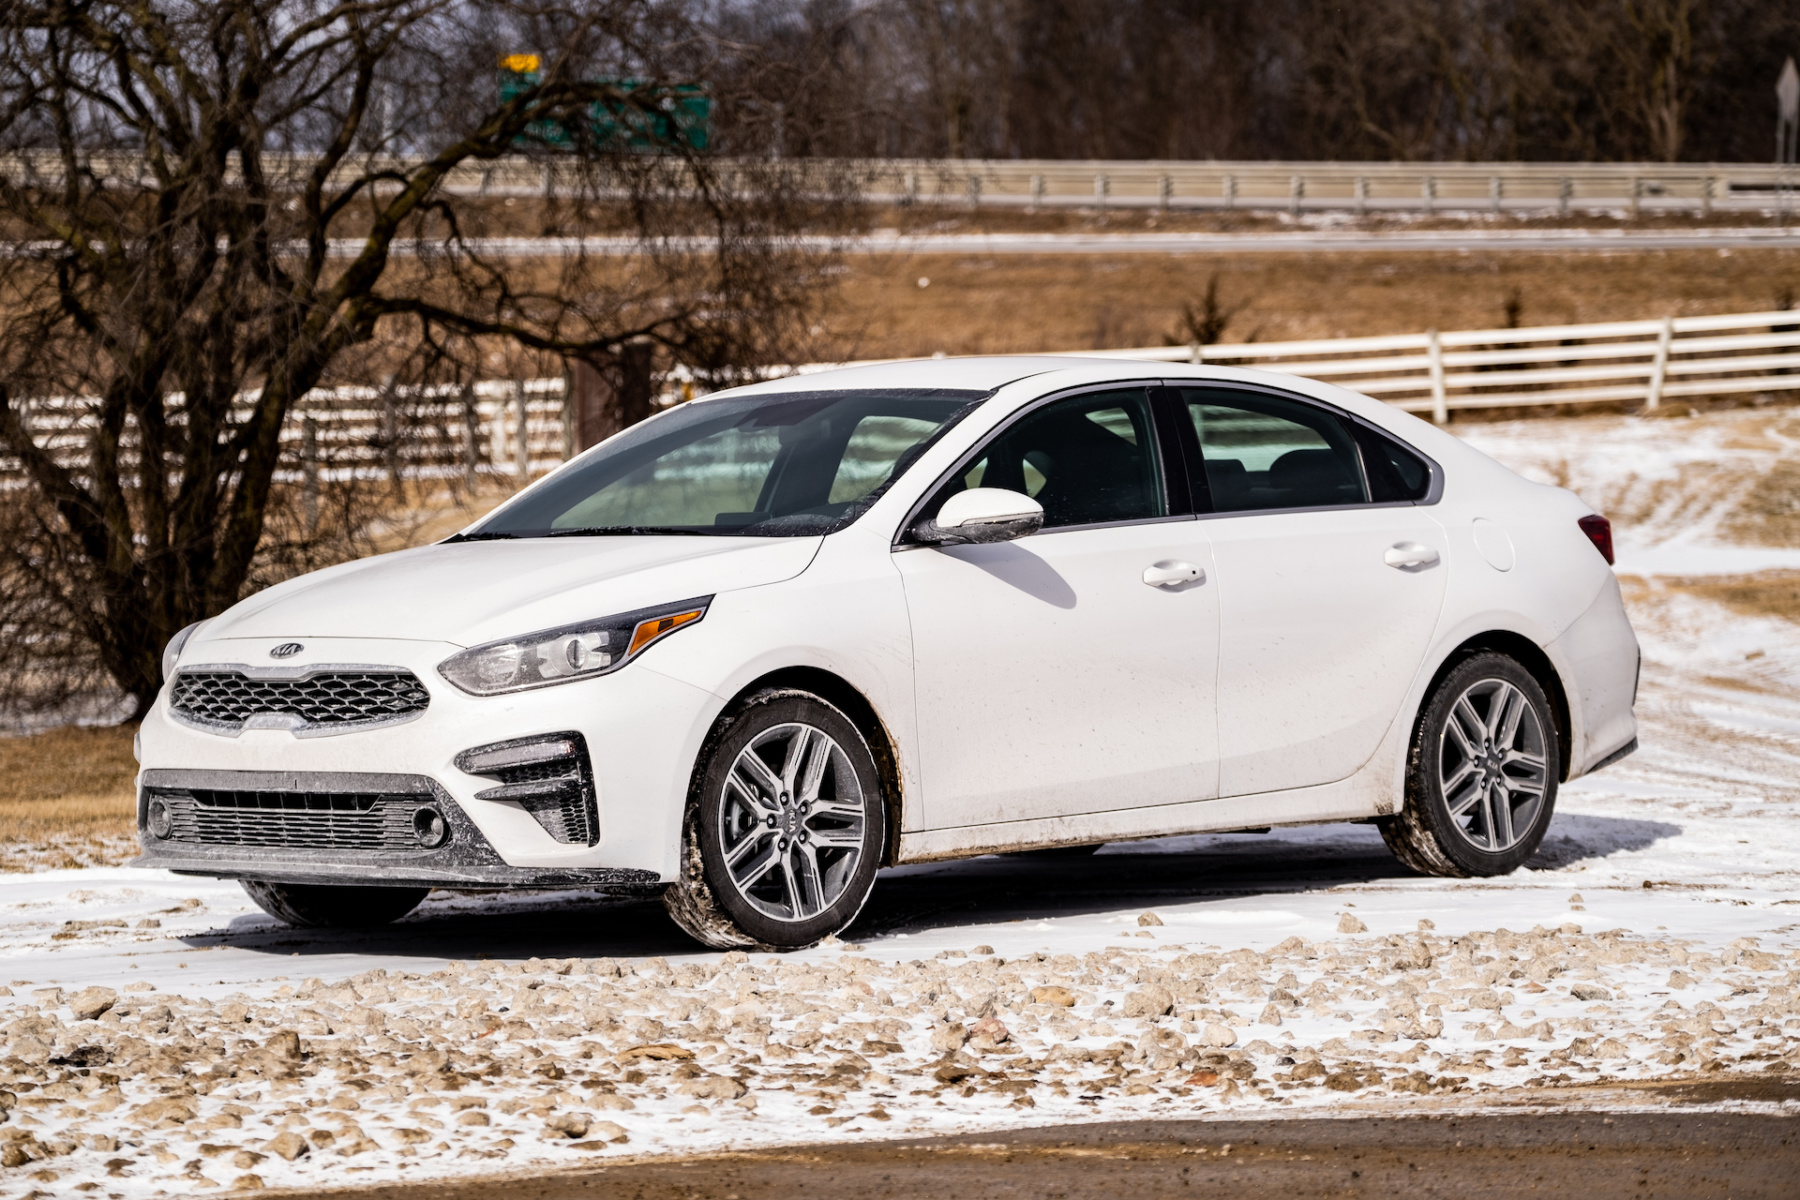 2019 Kia Forte Ex Where Cheap And Good Aren T Mutually Exclusive